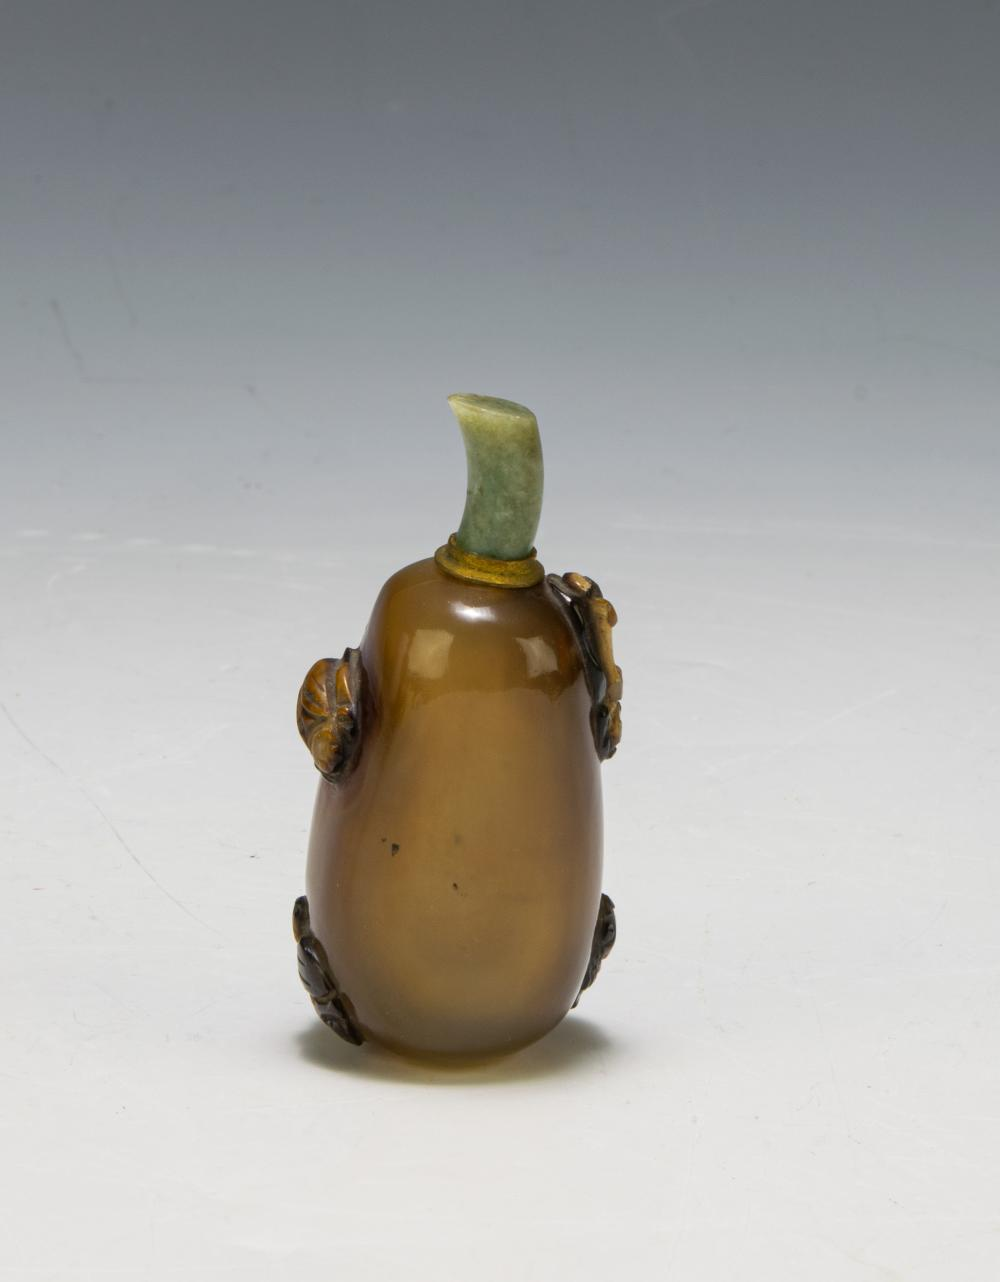 Lot 622: CHINESE AGATE SNUFF BOTTLE, 19TH CENTURY